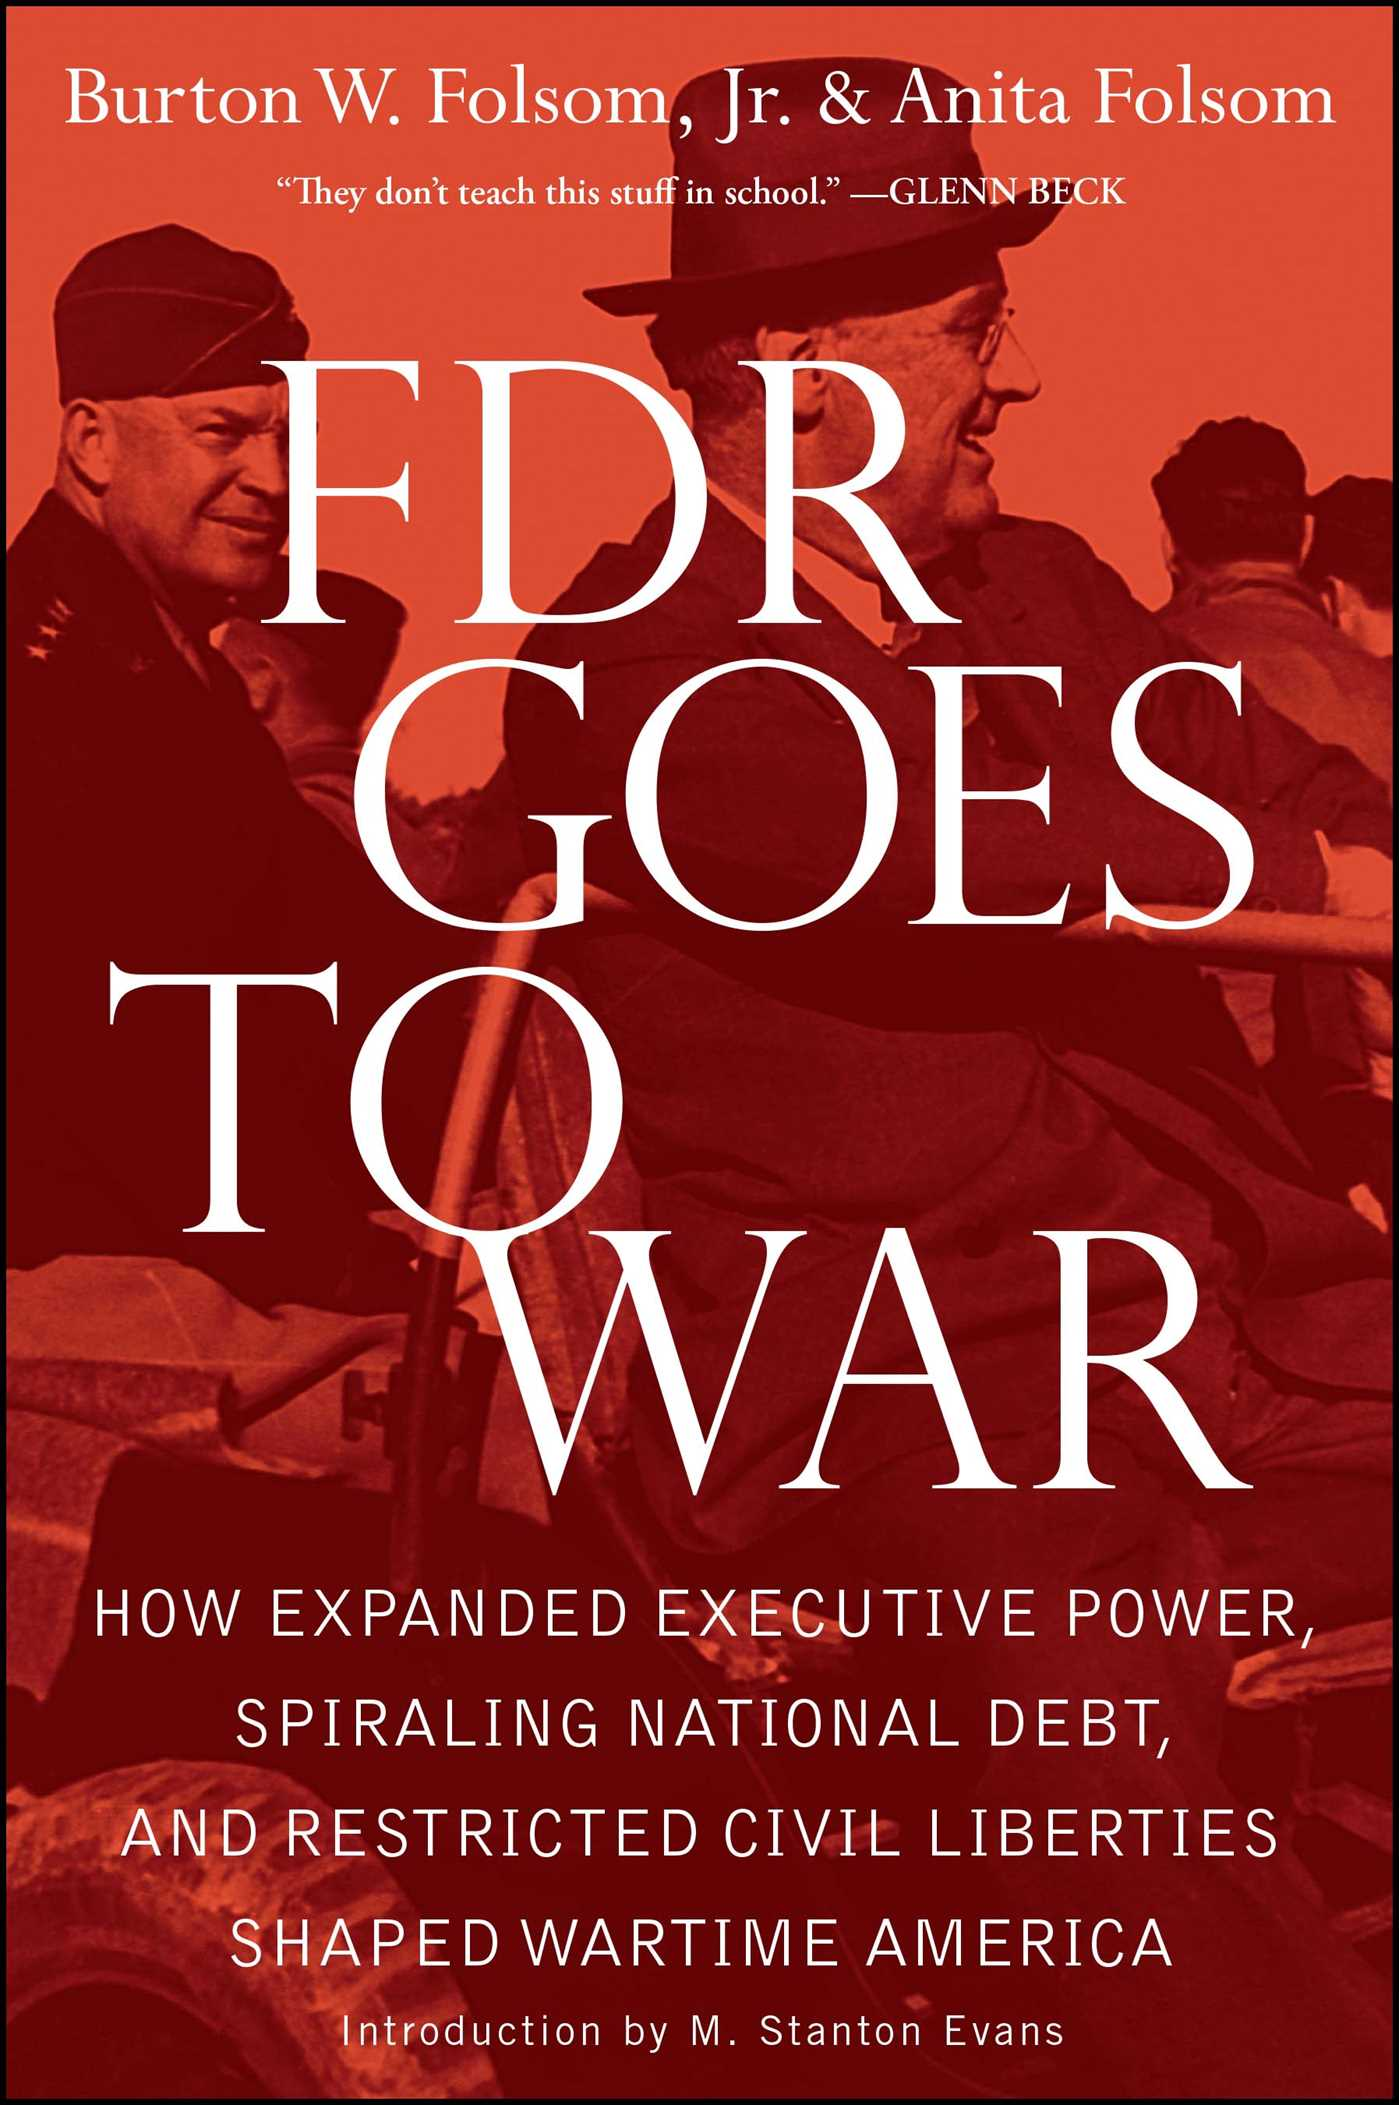 Fdr goes to war 9781439183243 hr